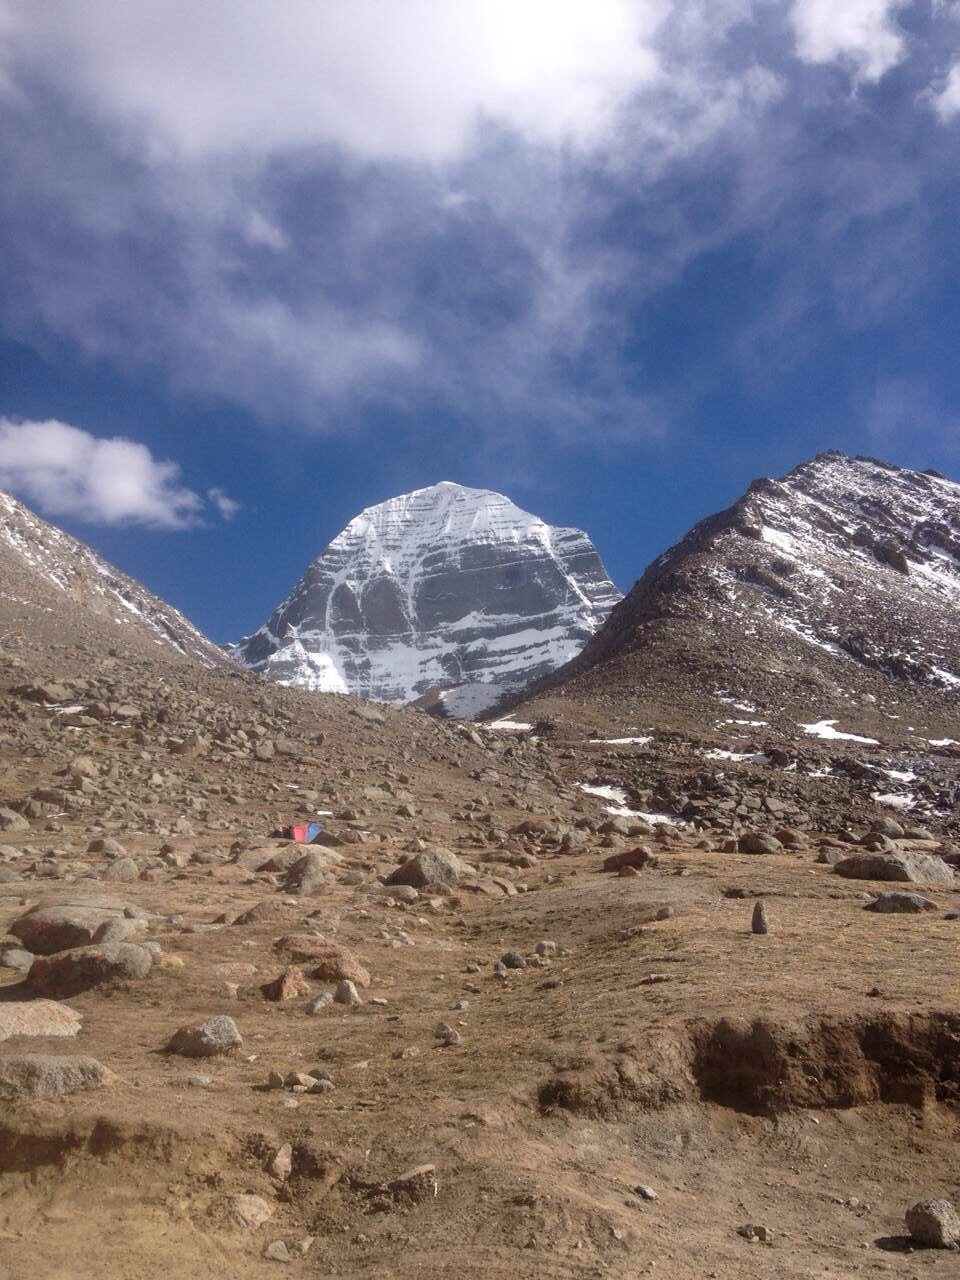 A far view of Mt. Kailash